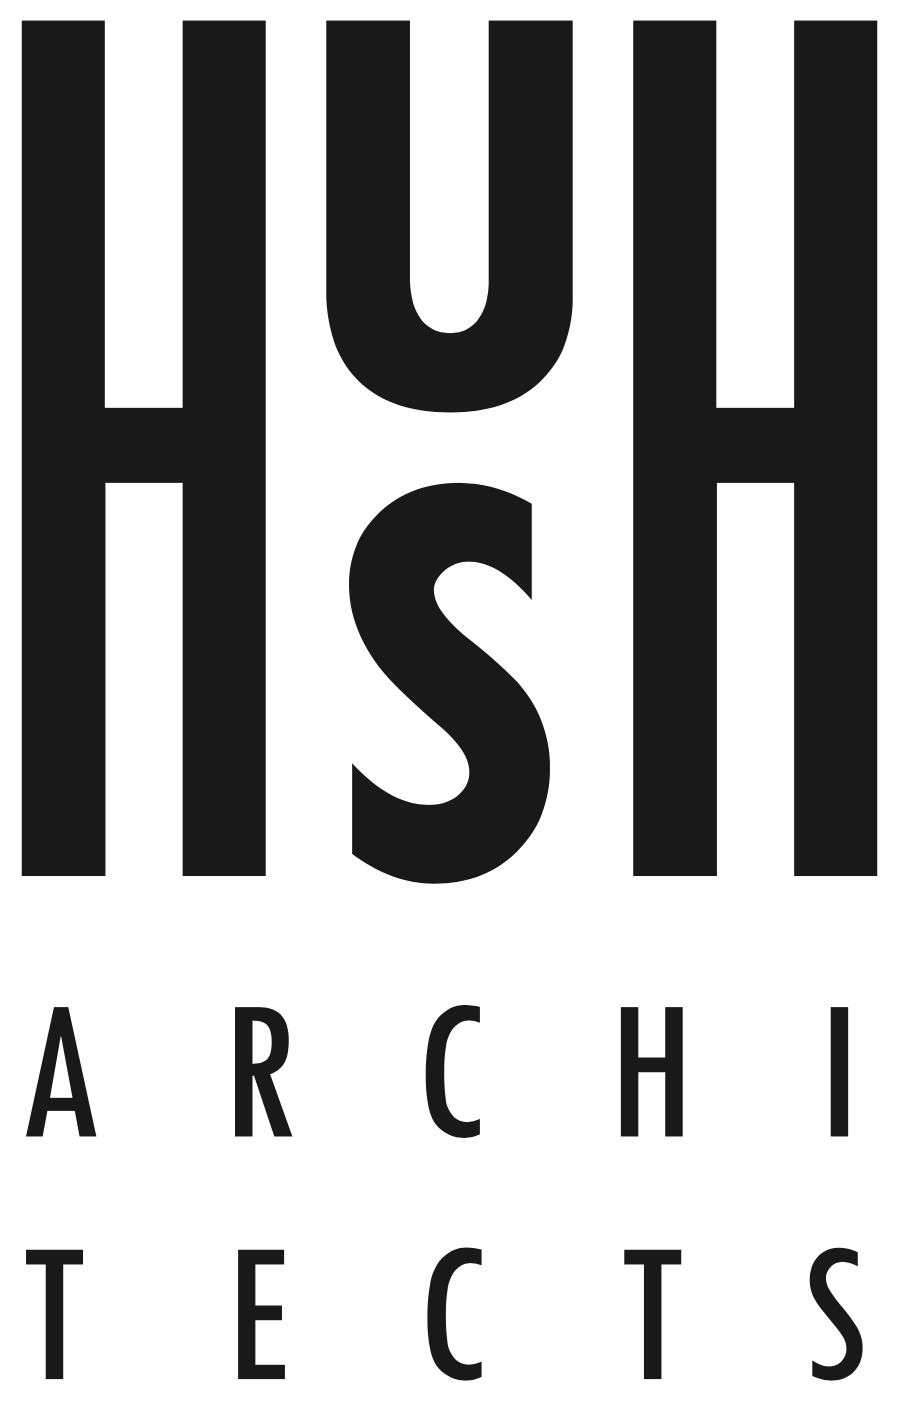 Hush Architects